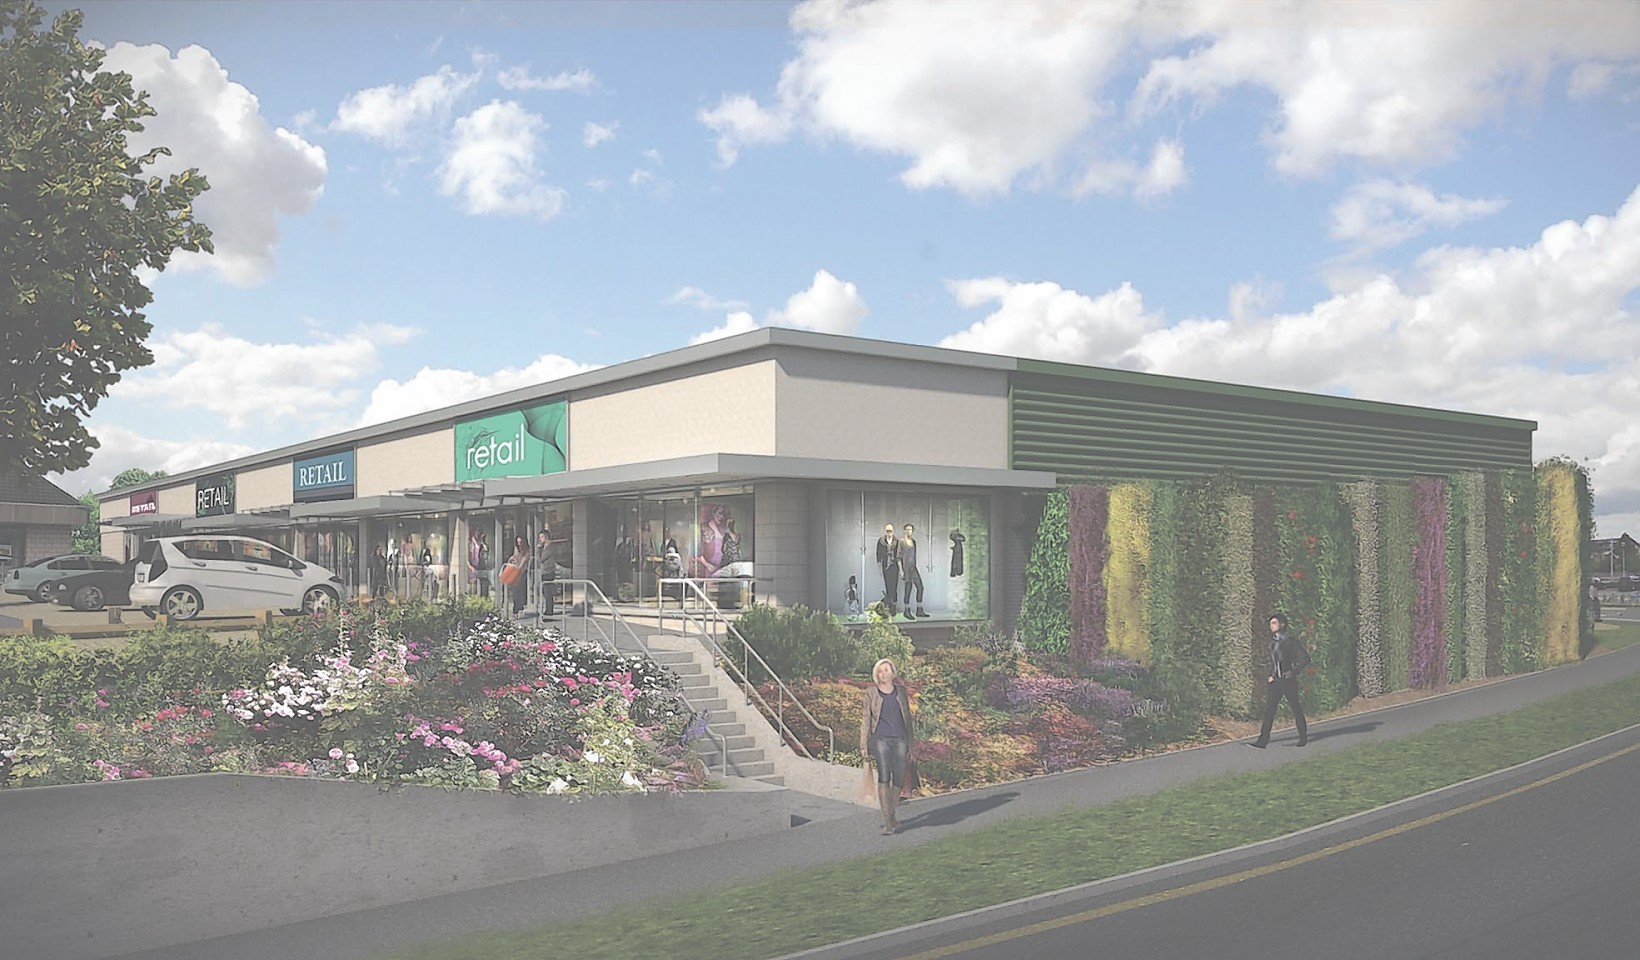 Artist's impression of the extension to Westhill Shopping Centre